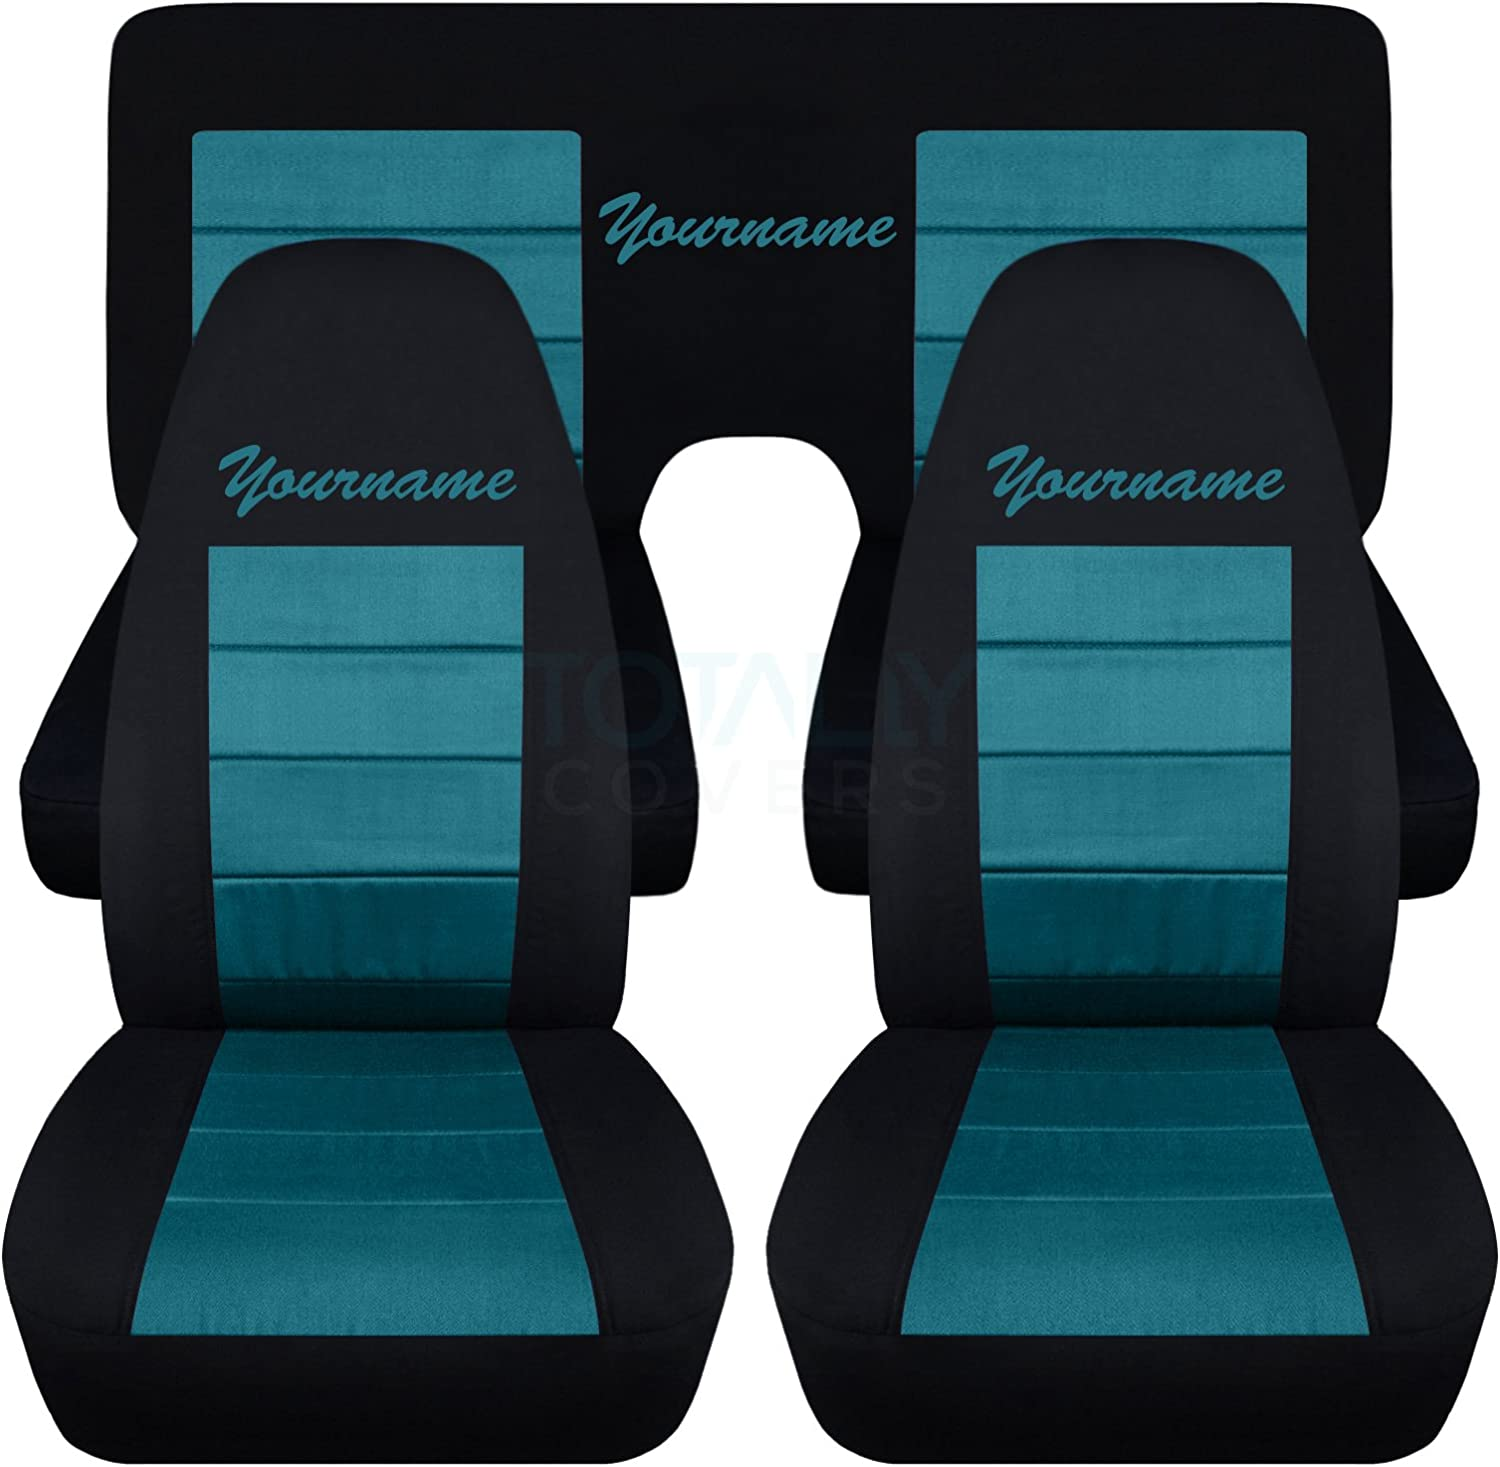 Coupe 2nd Generation Chevrolet Totally Covers Compatible with 1970-1981 Chevy Camaro 2-Tone Seat Covers with Your Name//Text: Black /& Blue 22 Colors Full Set